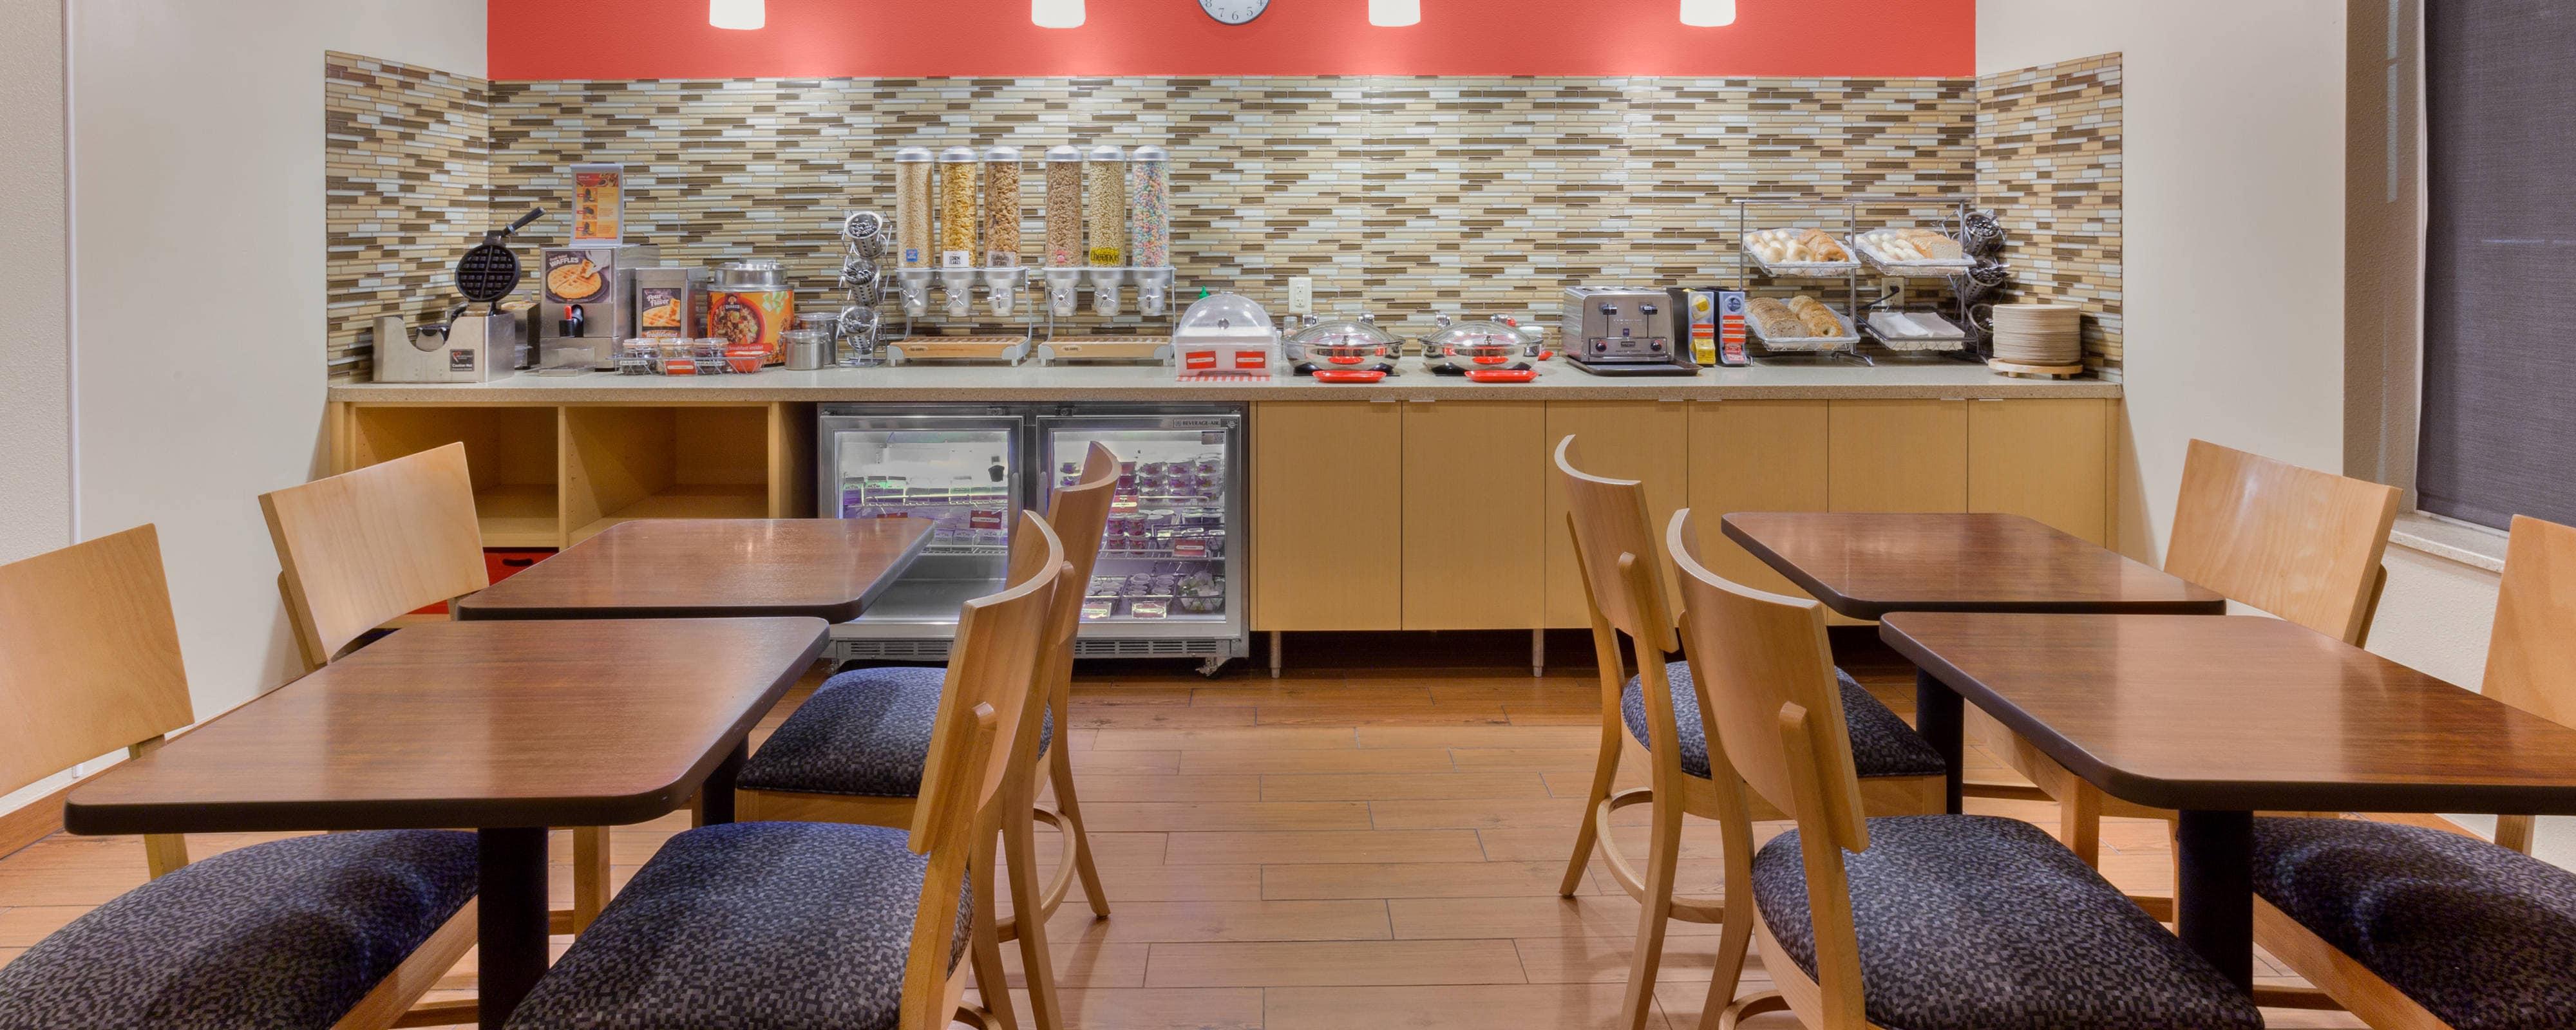 Hotel Dining Restaurants Towneplace Suites Minneapolis